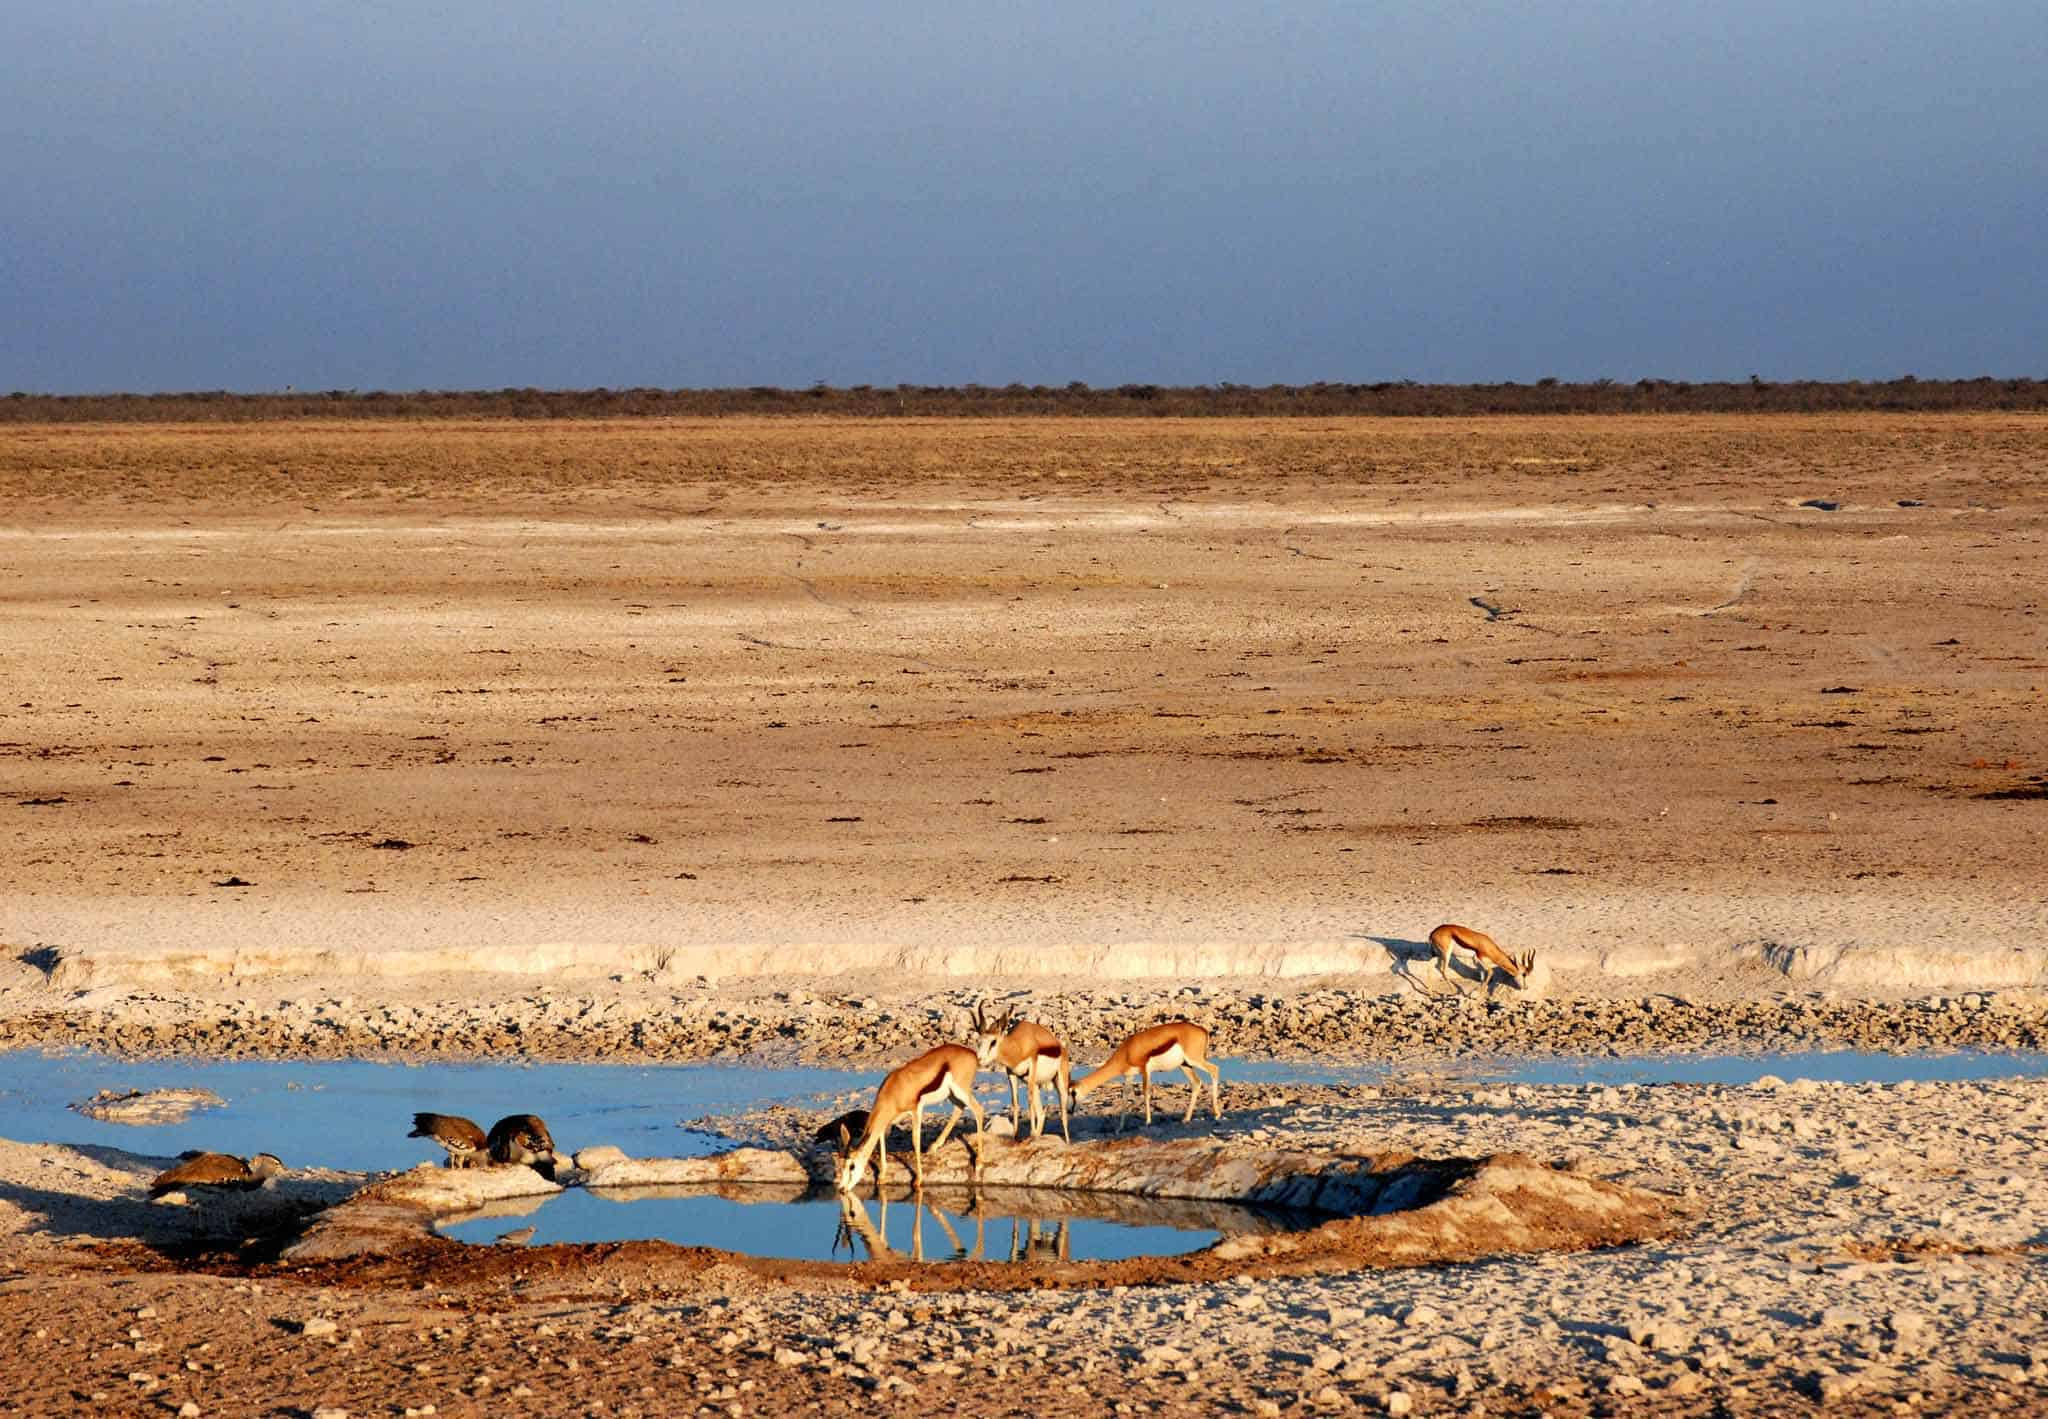 Gazelles drinking